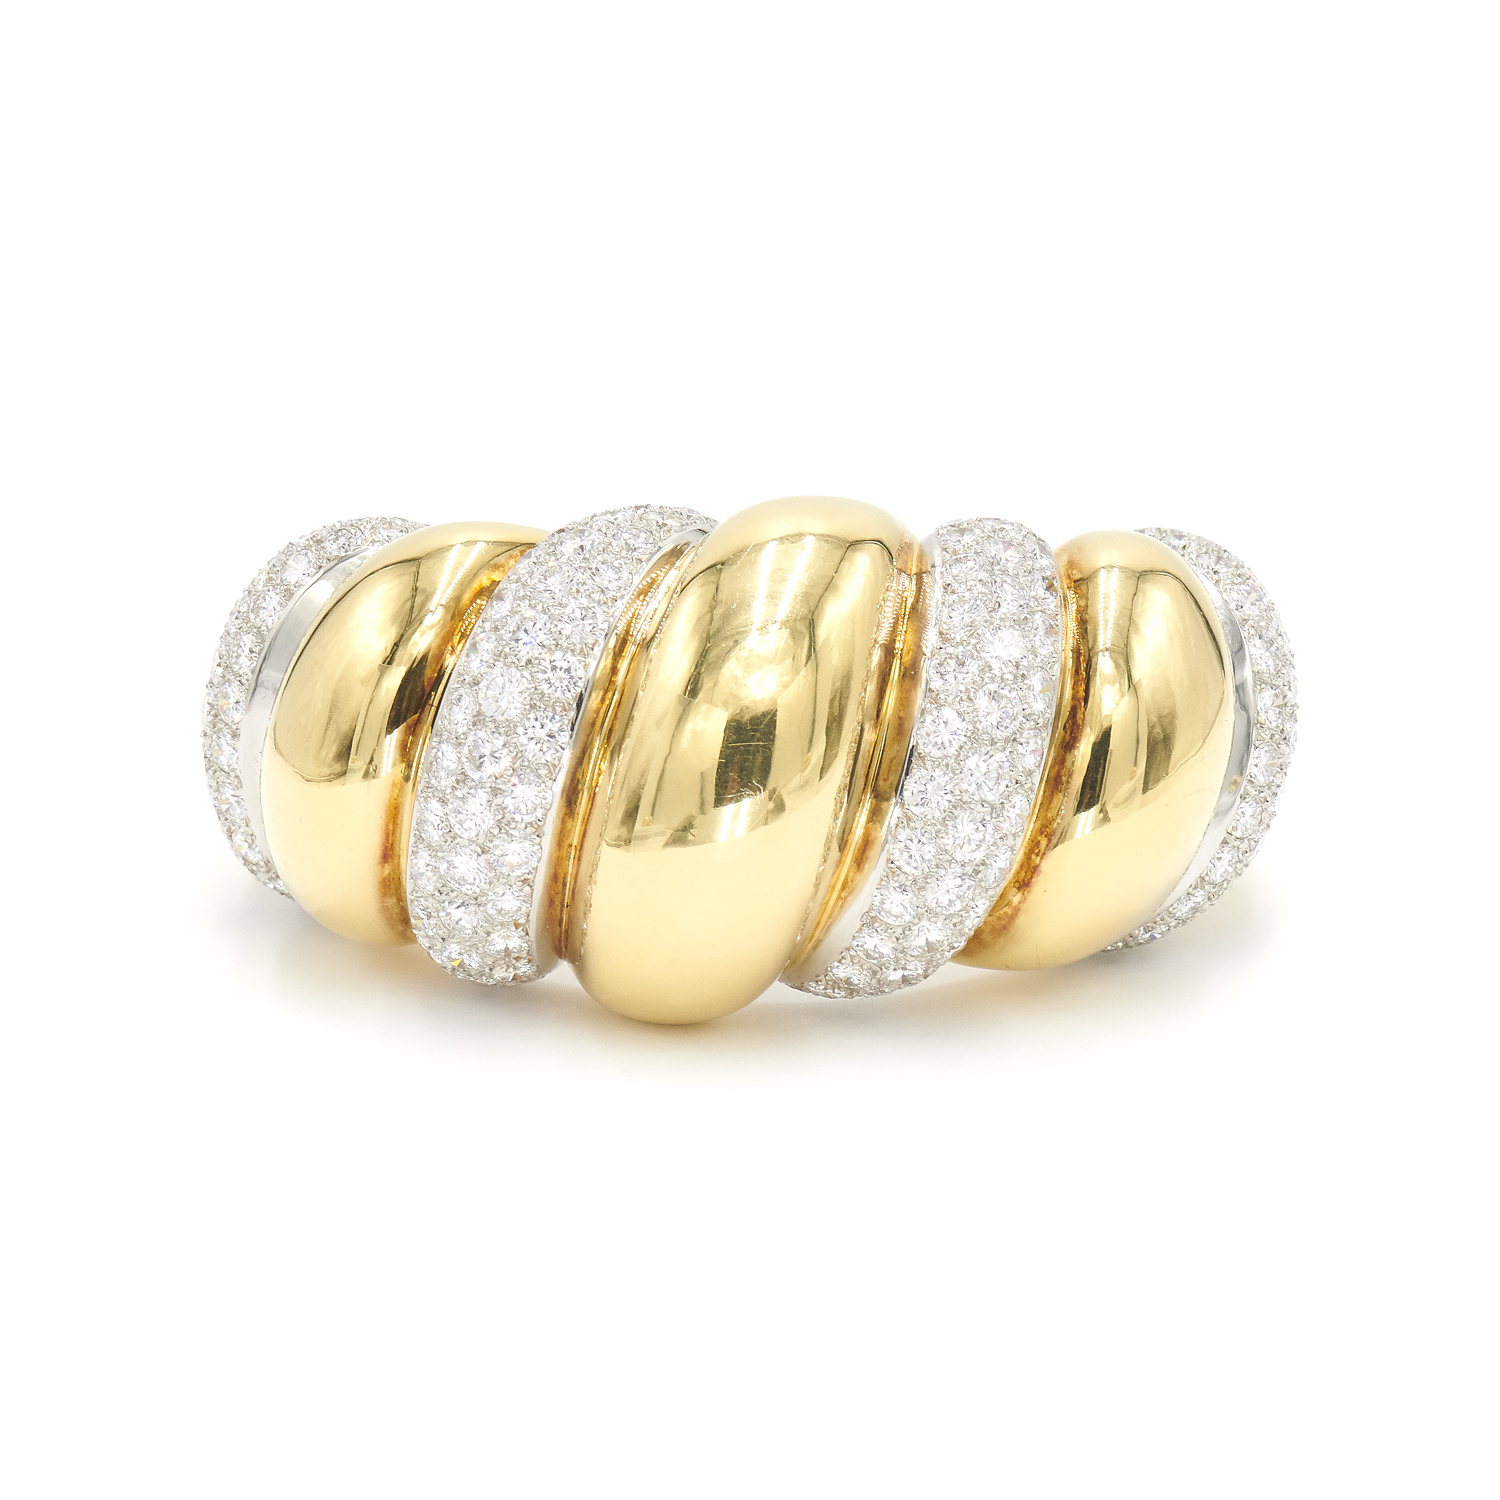 Diamond and Yellow Gold Torsade Cuff Bracelet by René Boivin Style B-34857-FL-0-0